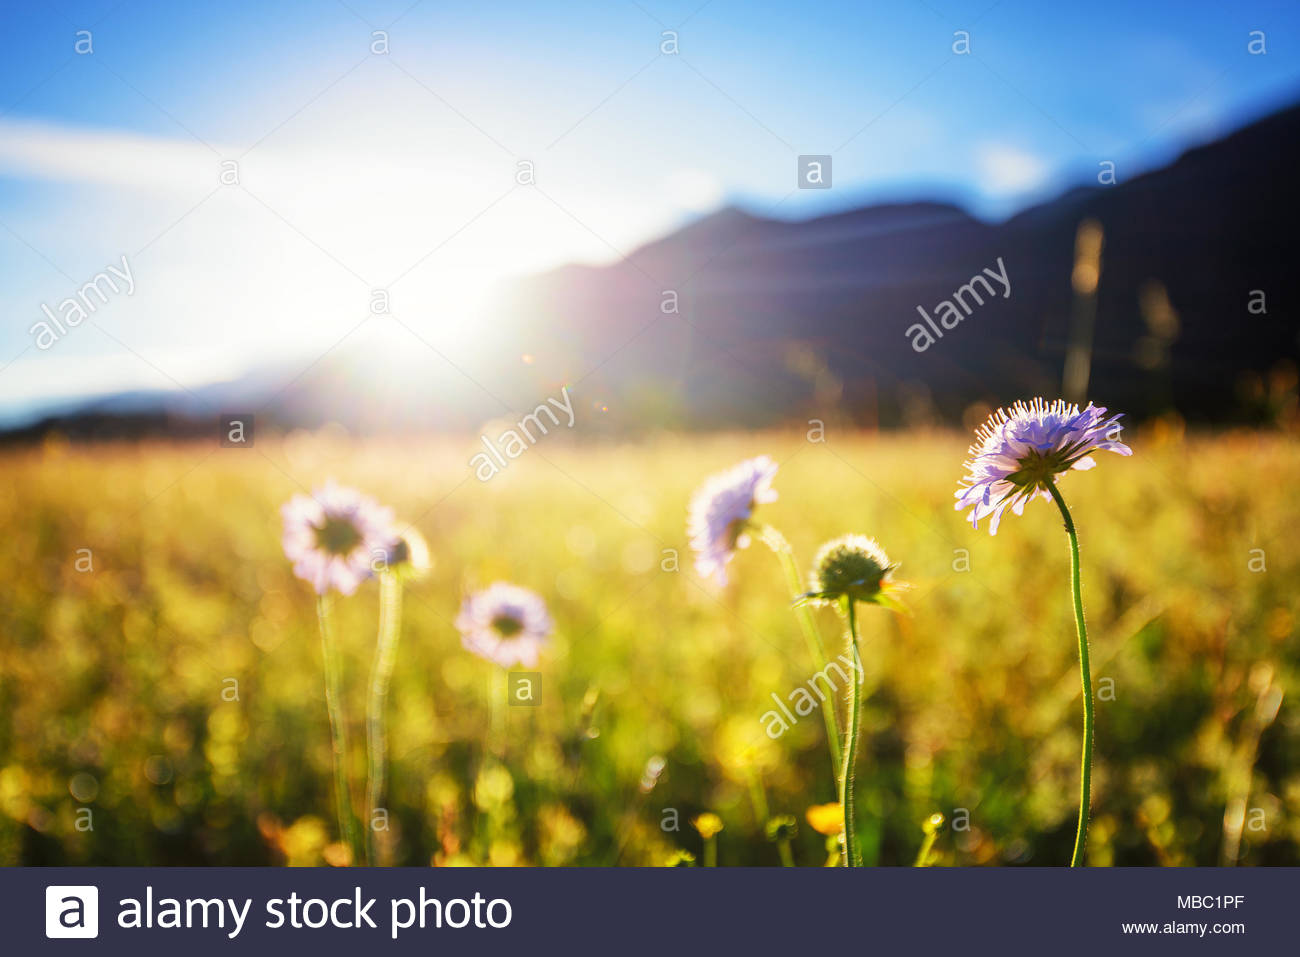 Beautiful spring meadow. Sunny clear sky with hut in mountains. Colorfull field full of flowers. Direct sunlight at Grainau, Germany - Stock Image